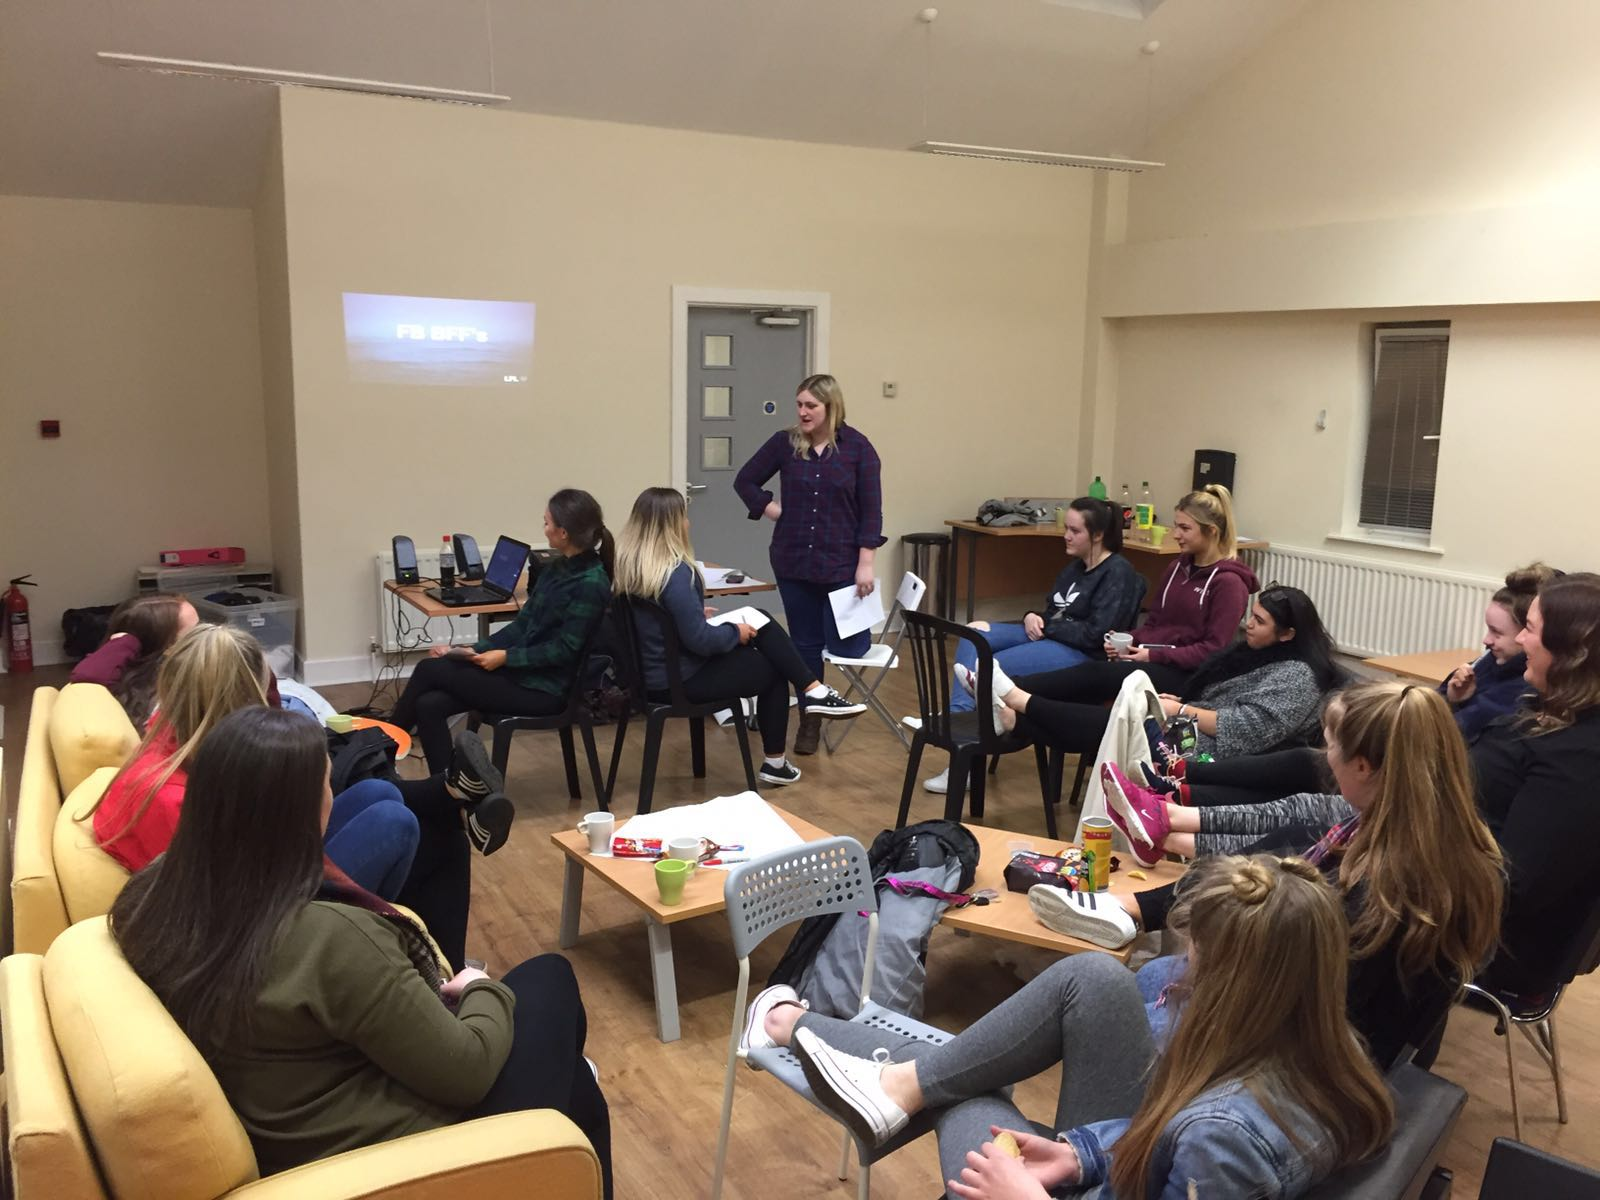 'Beautiful Me' workshop which focused on being a safe and healthy user of social media